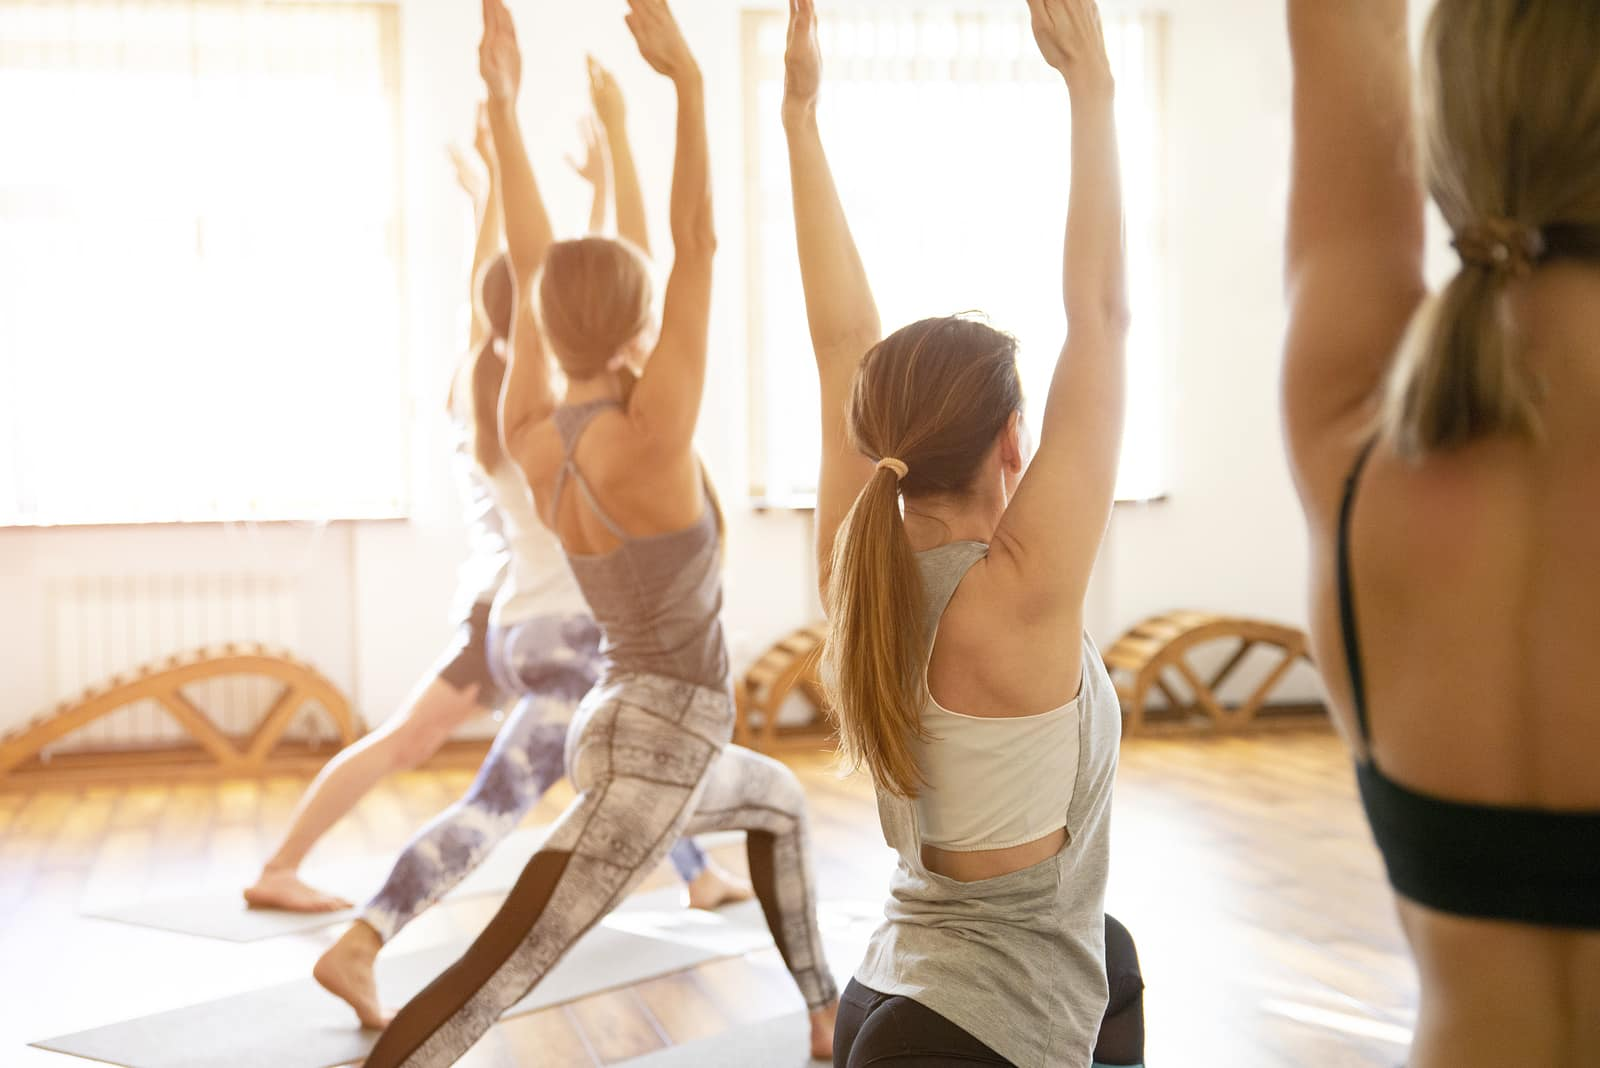 Hot yoga and fertility: what to consider